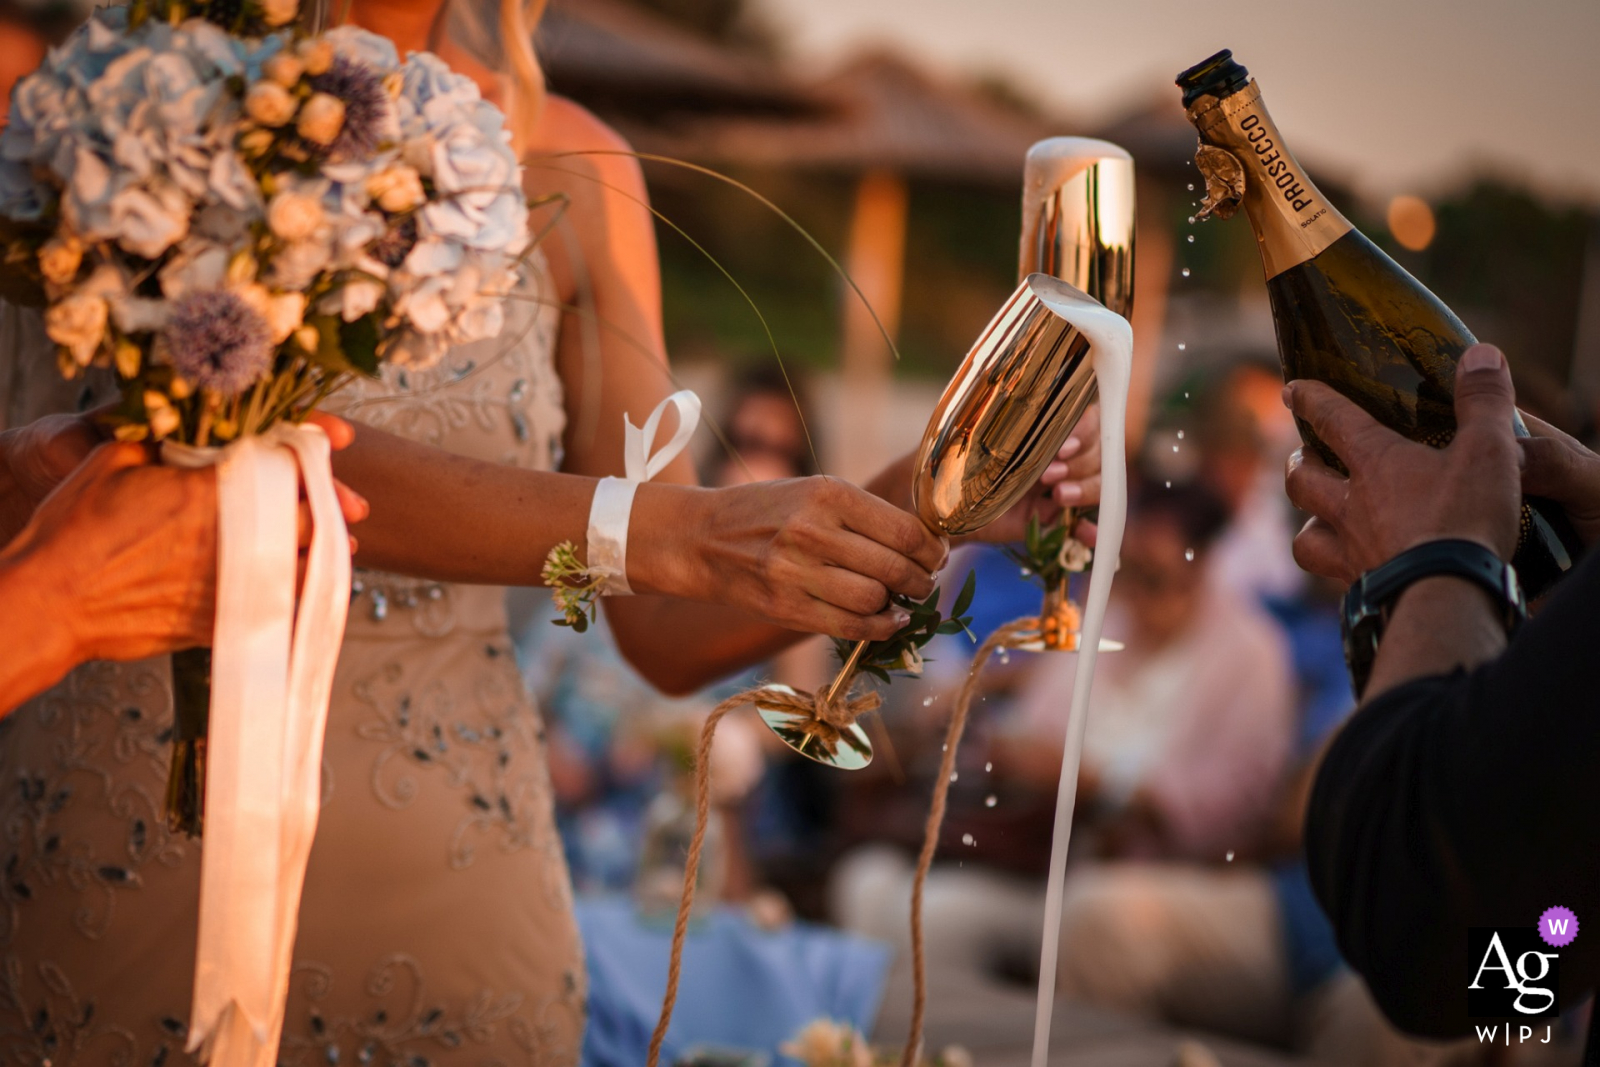 Black Sea wedding detail image of the best man pouring champagne during the ceremony at Papur Beach and Bar